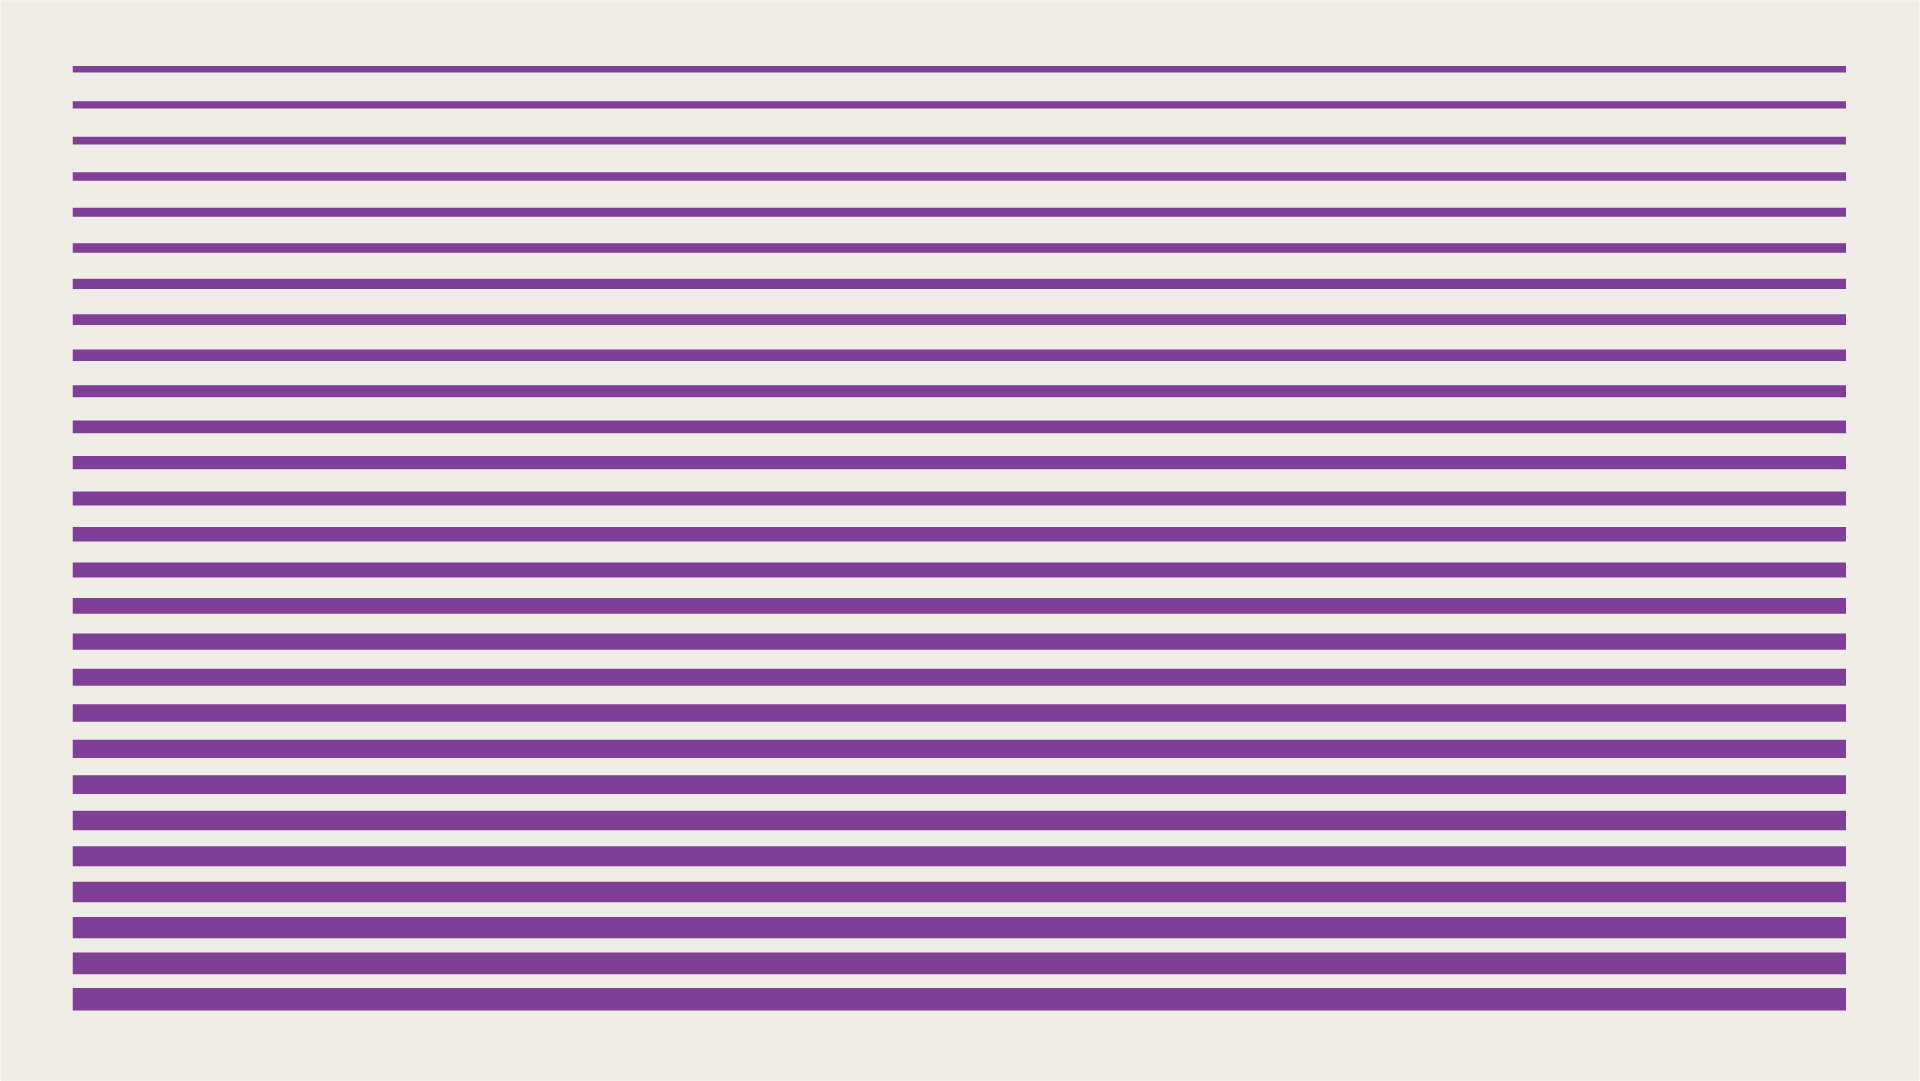 Decorative graphic with striped purple lines